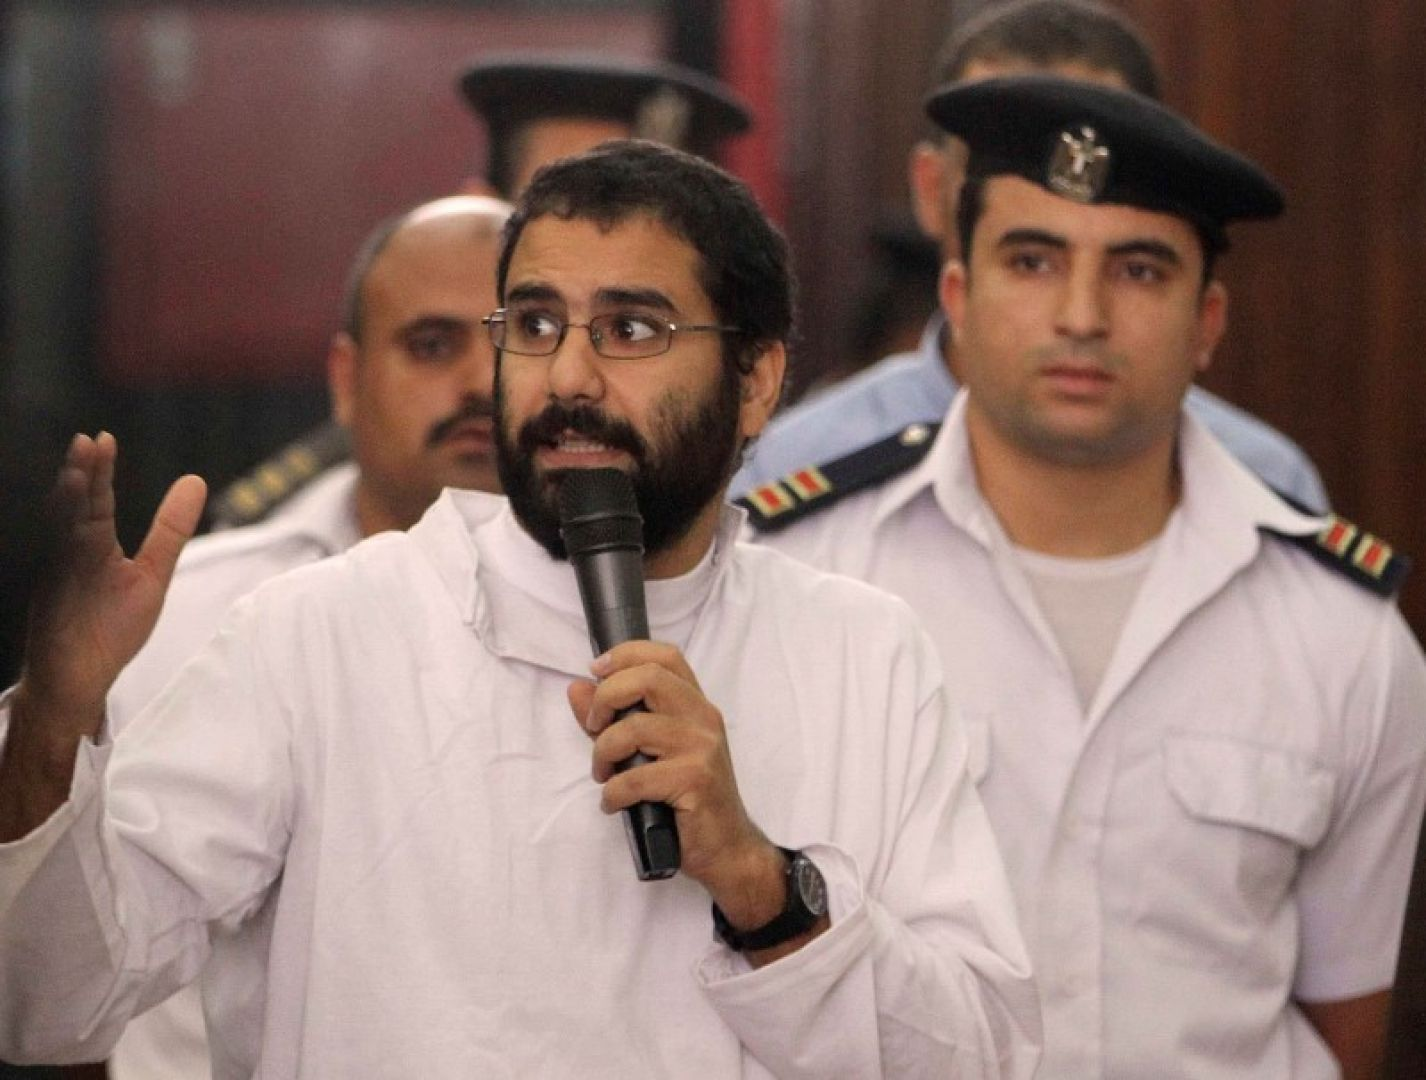 Egypt's top appeals court upholds five-year jail term for activist